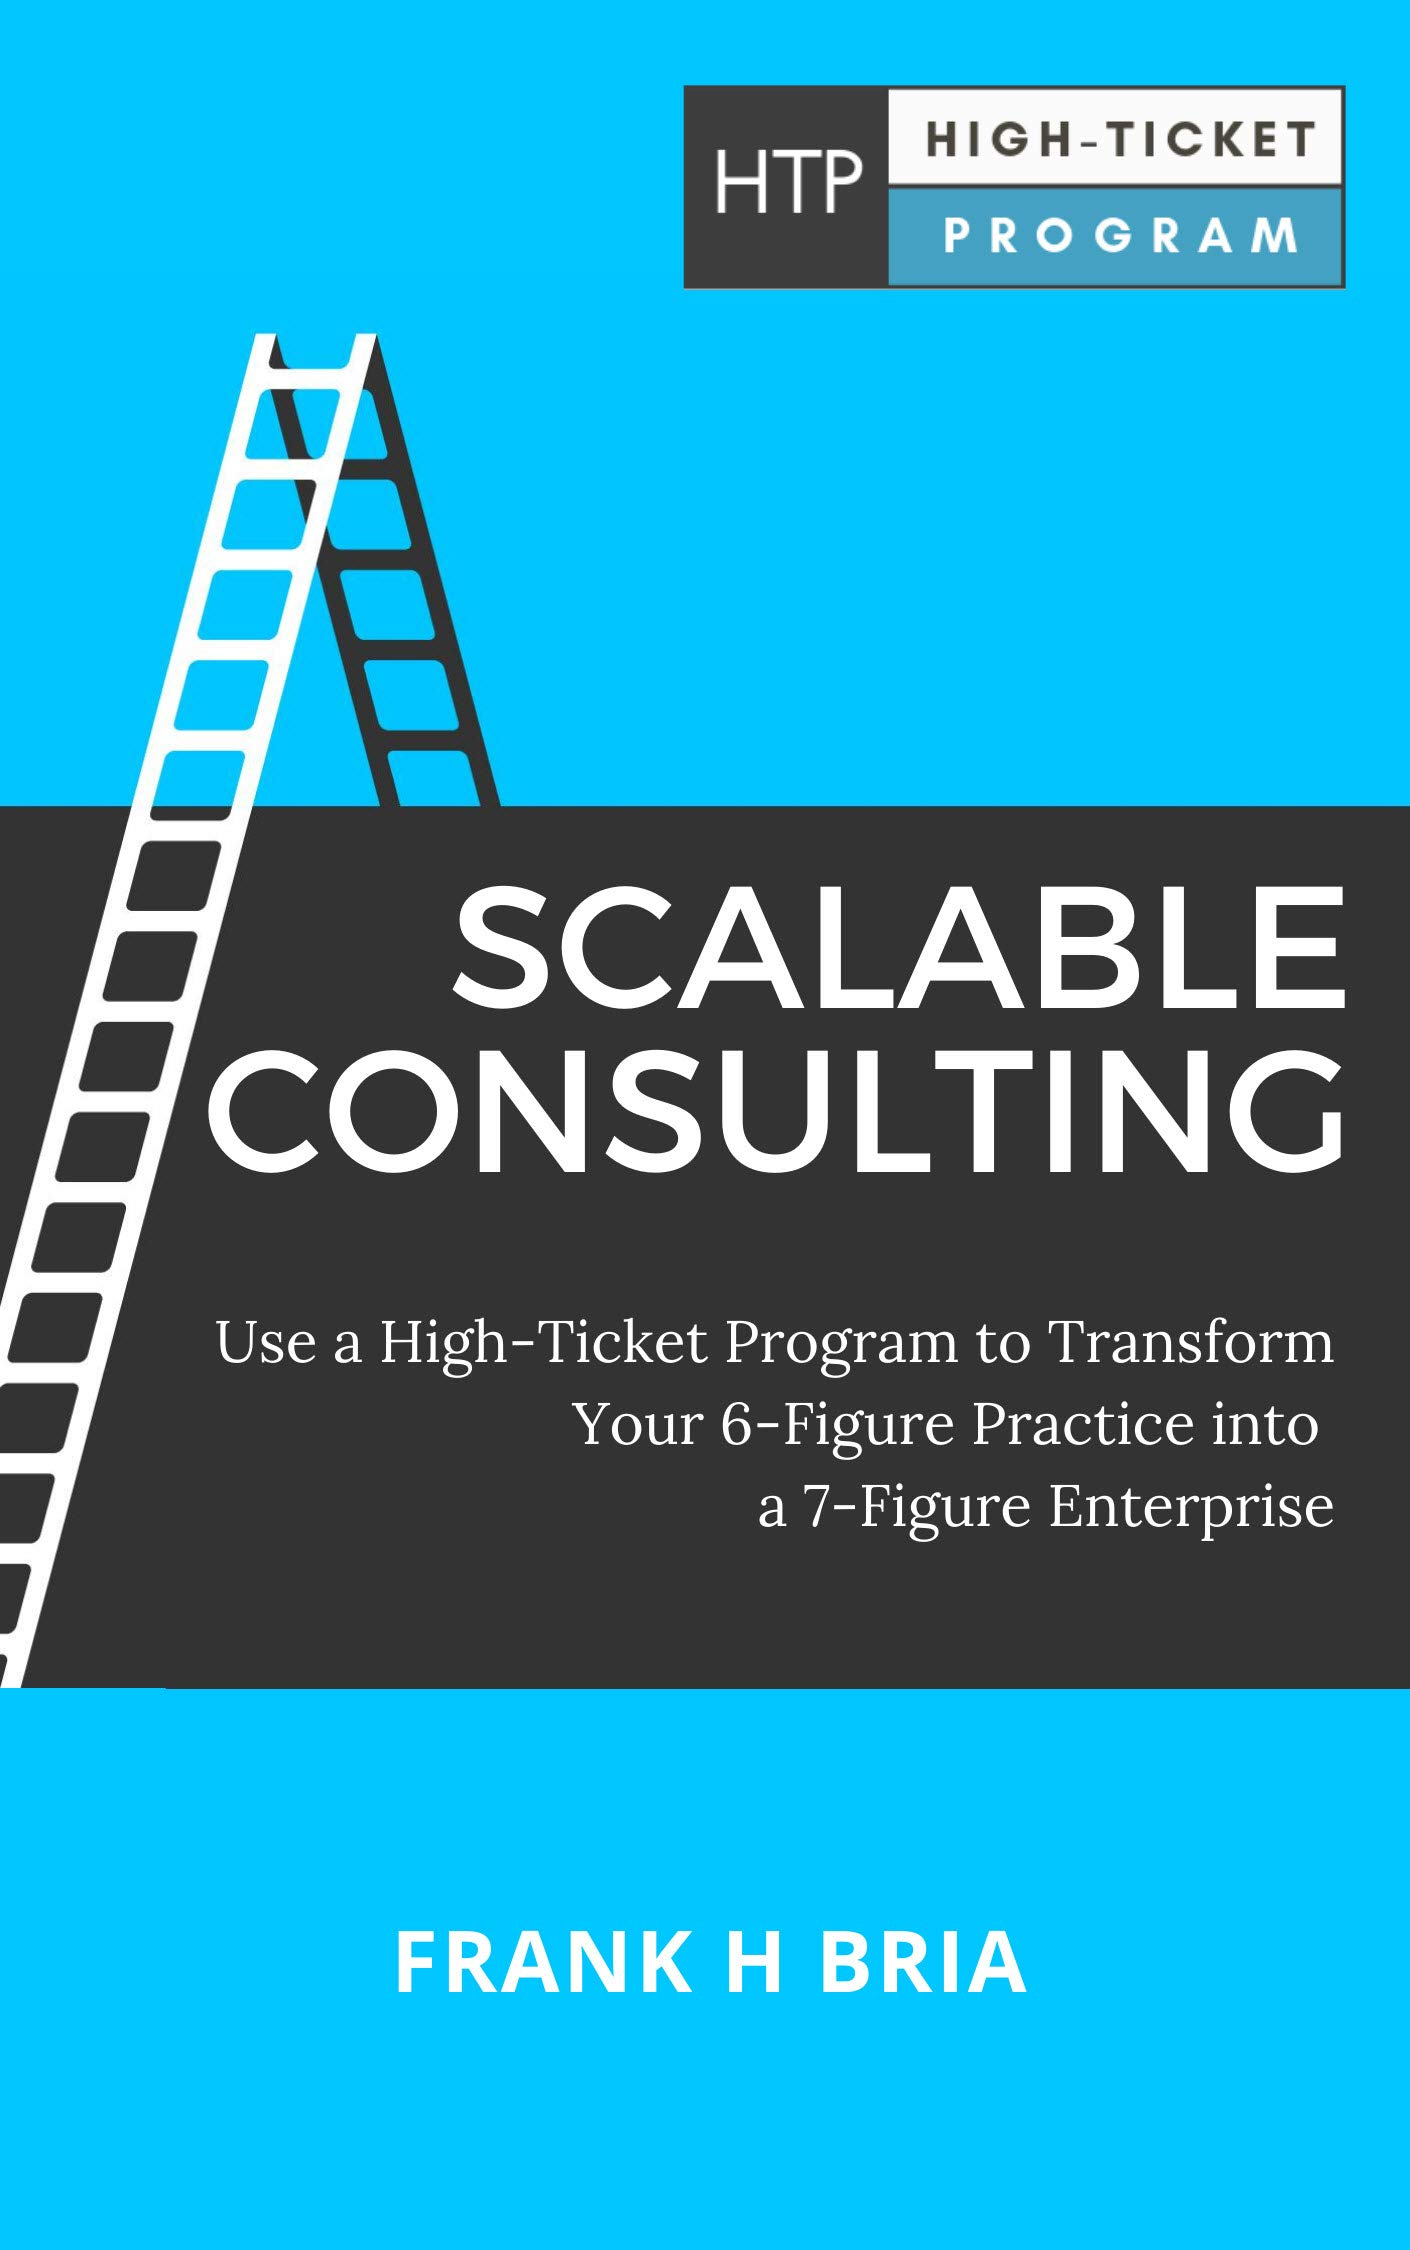 Scalable Consulting: Use a High-Ticket Program to Transform Your 6-Figure Practice into a 7-Figure Enterprise